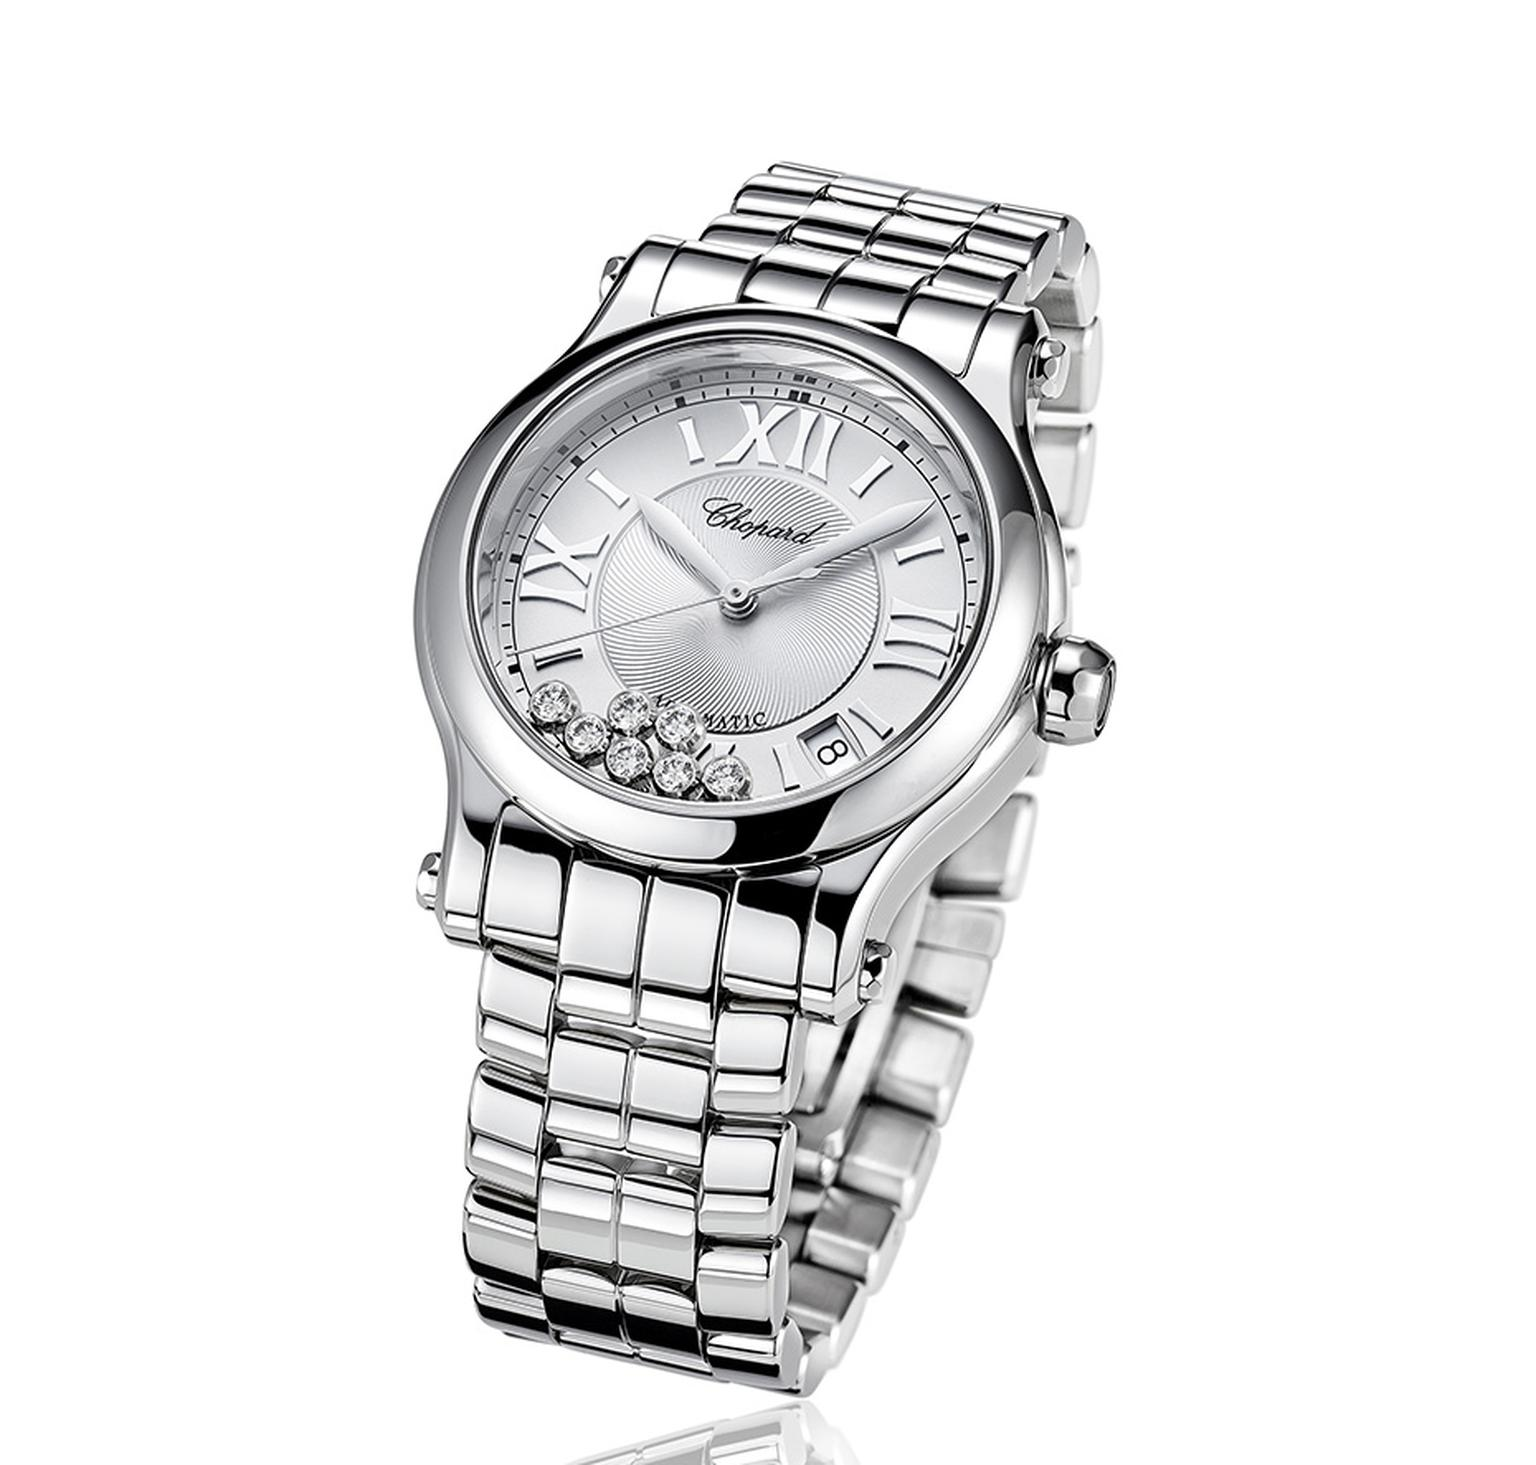 Chopard Happy Sport Medium Automatic watch in stainless steel.